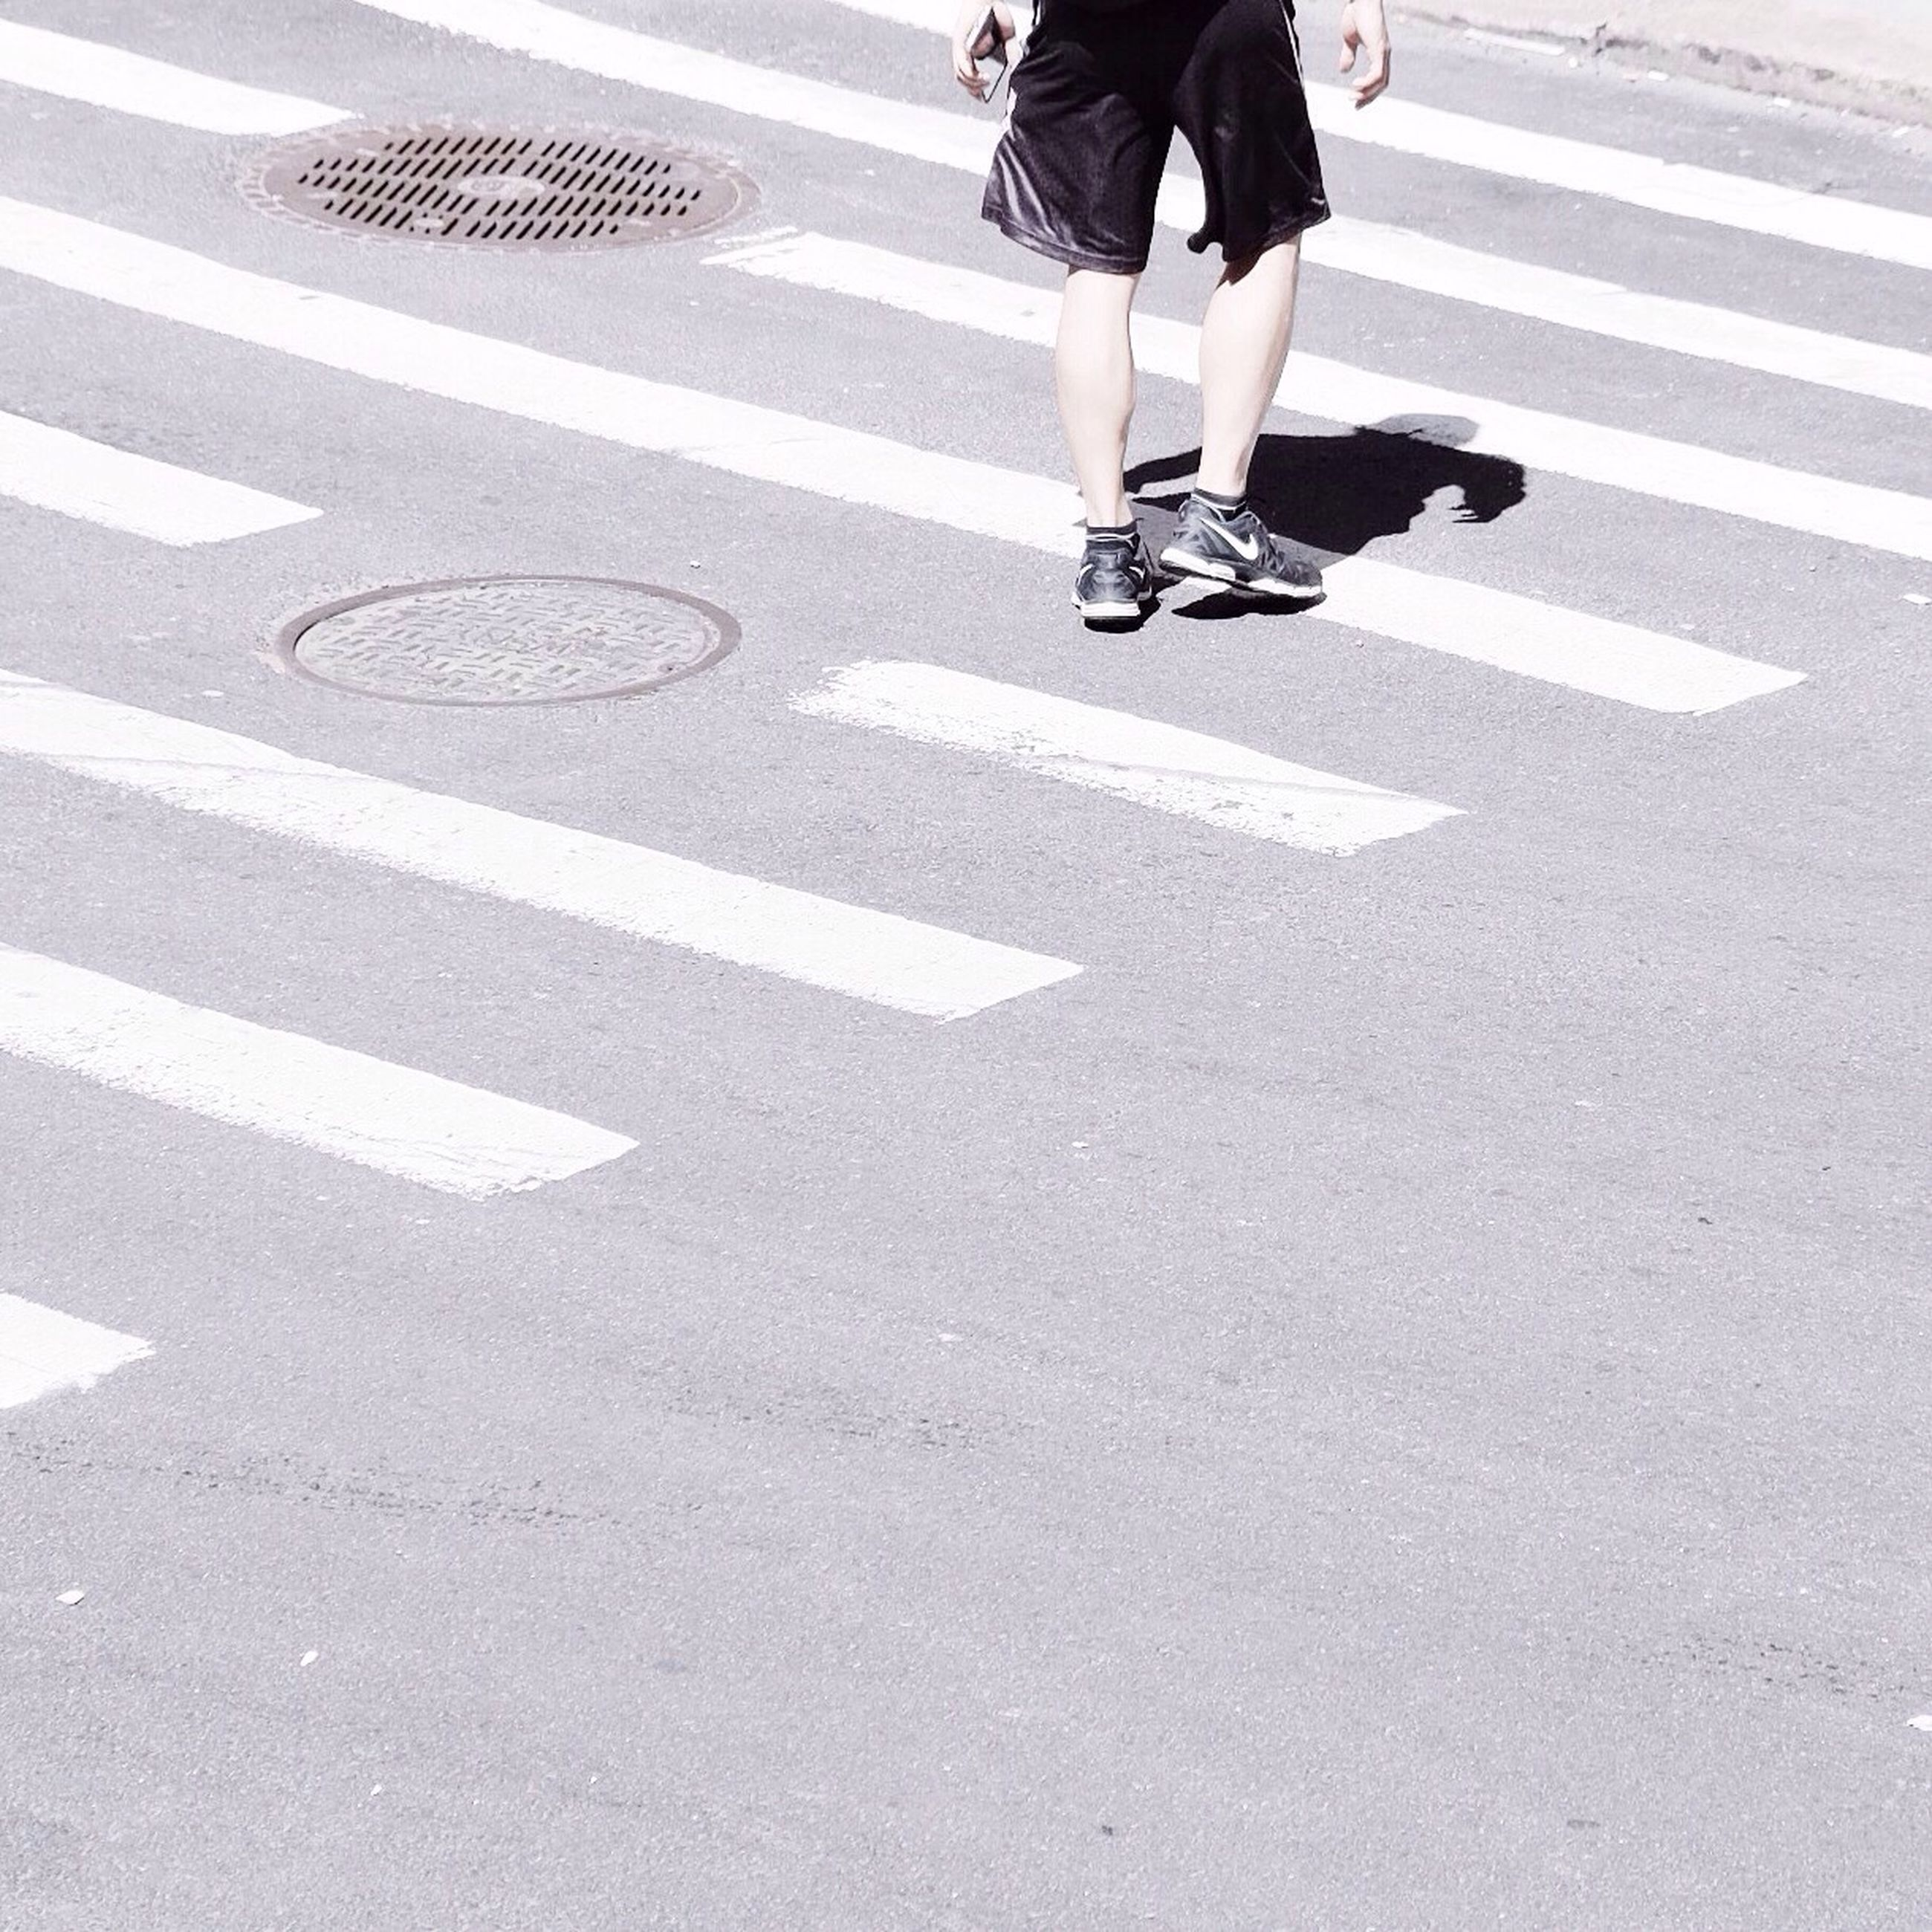 road marking, street, low section, lifestyles, walking, road, zebra crossing, men, person, transportation, leisure activity, city life, shadow, on the move, asphalt, standing, day